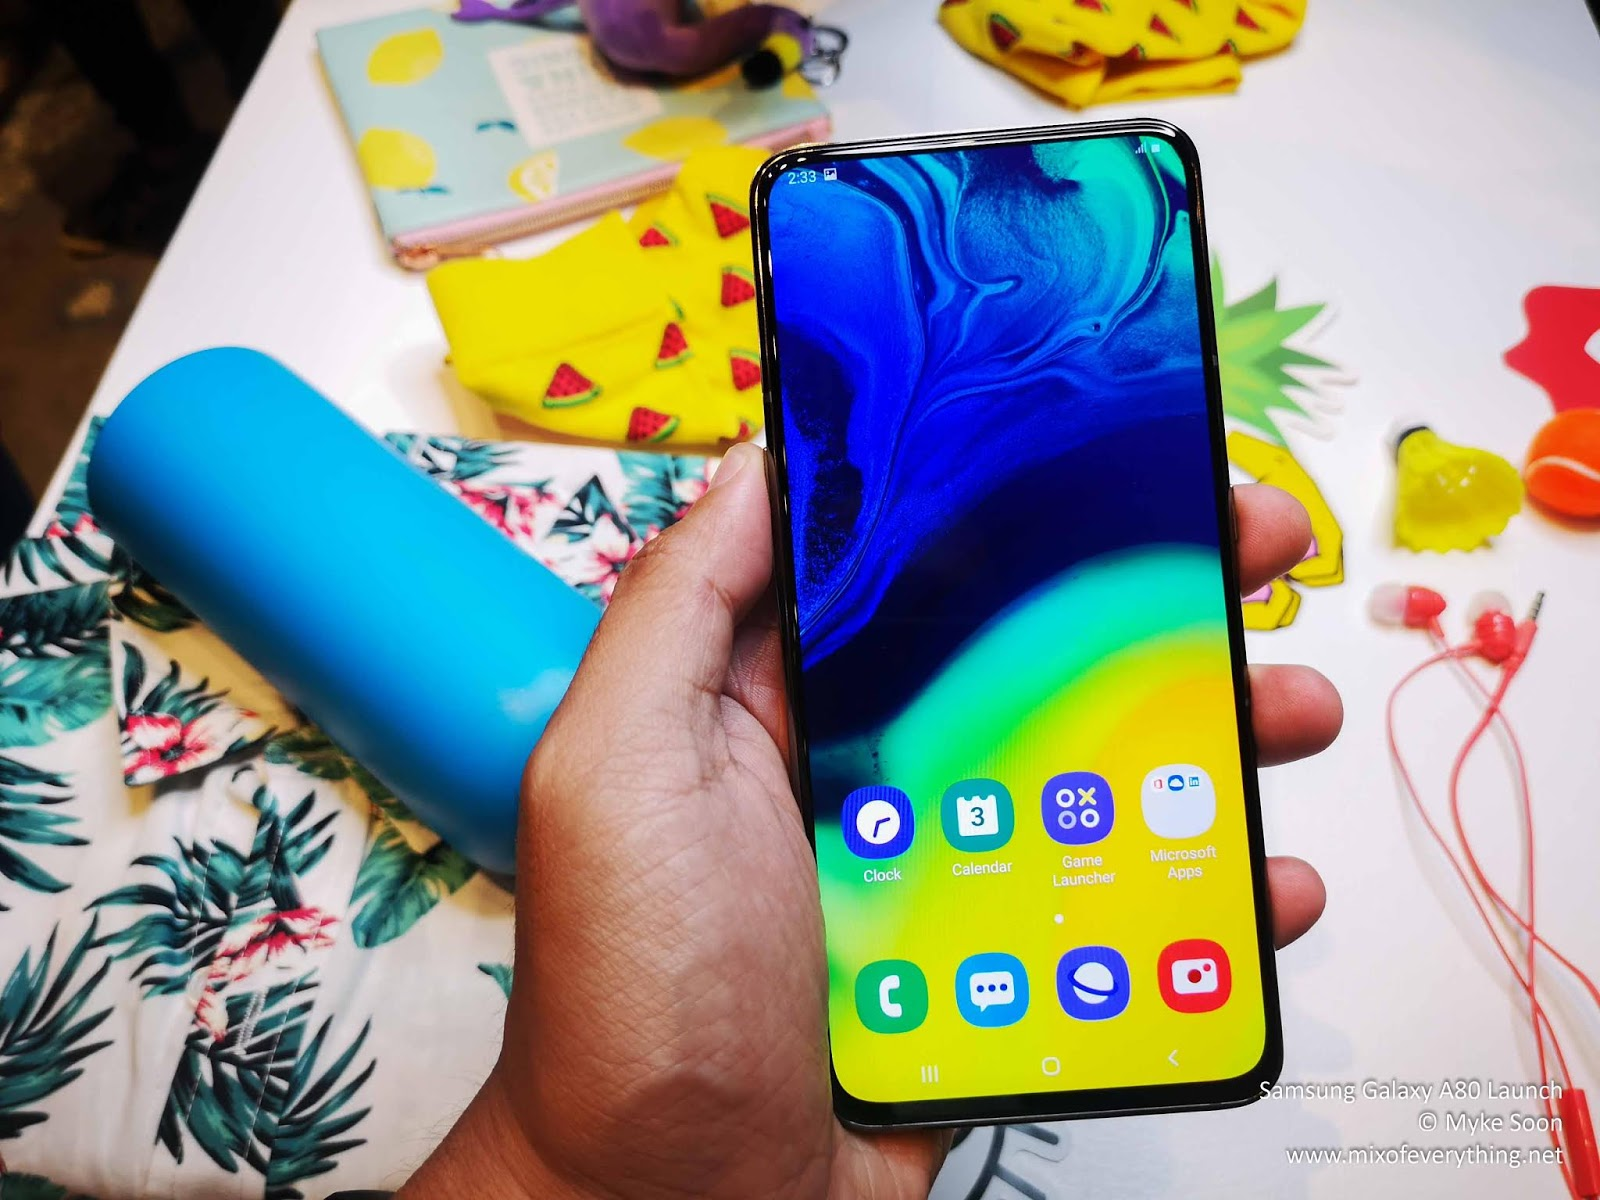 Image result for Galaxy A80 - HD Images